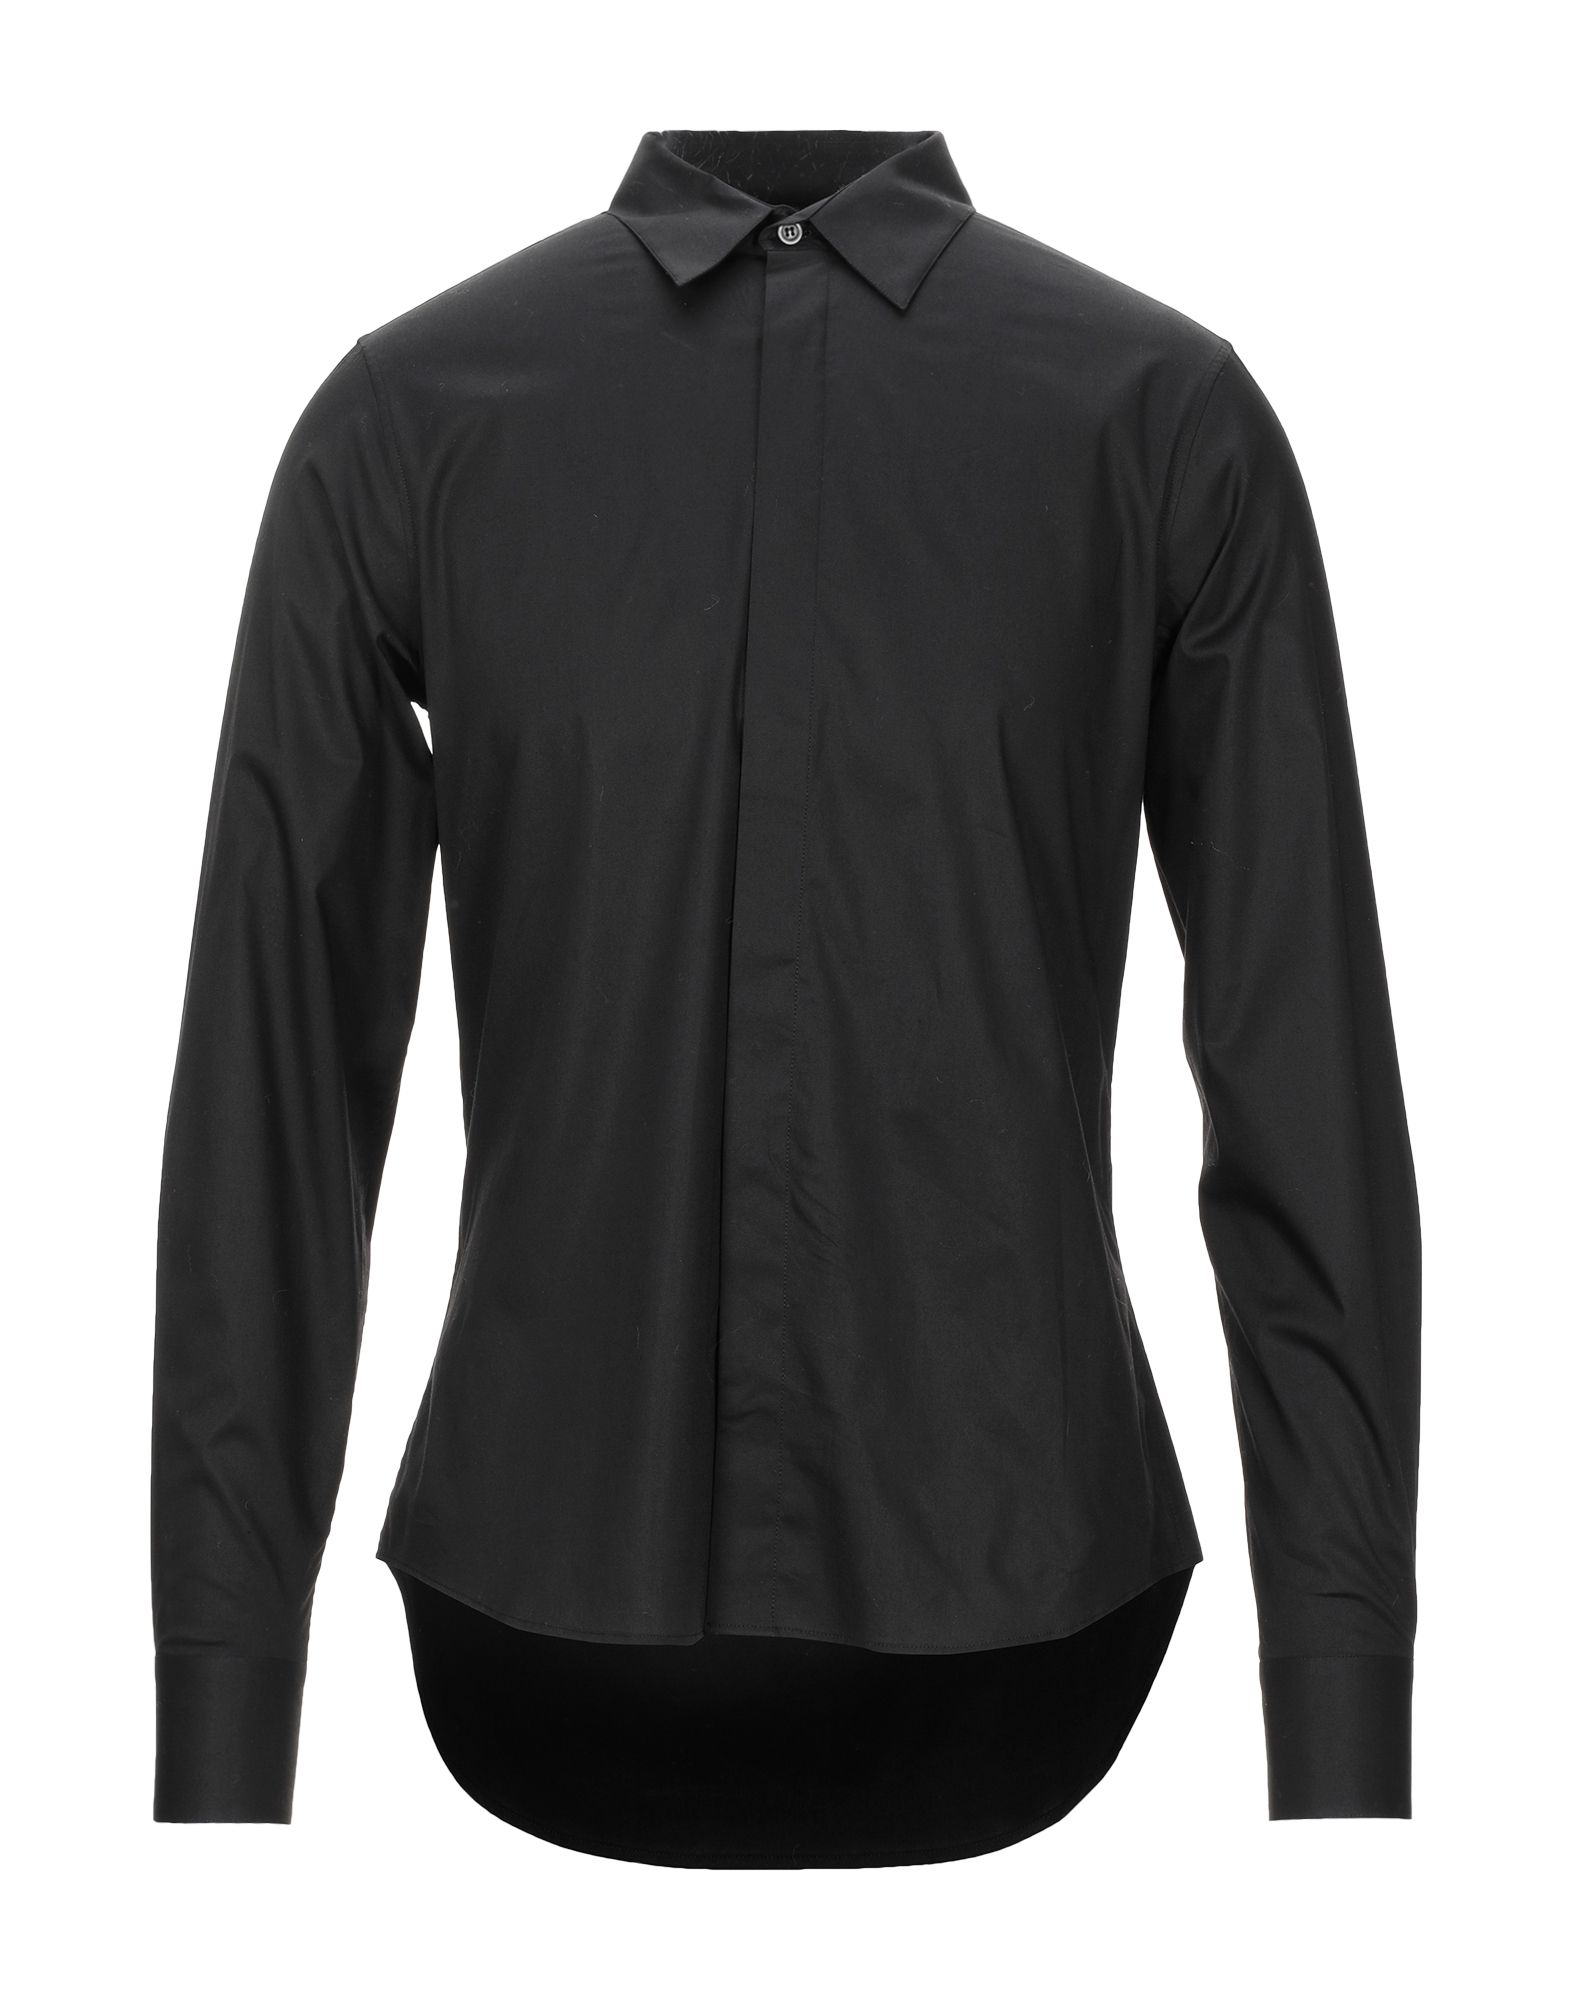 ALEXANDER MCQUEEN Shirts. poplin, folds, basic solid color, front closure, button closing, long sleeves, buttoned cuffs, classic neckline, no pockets, stretch, large sized. 96% Cotton, 4% Elastane